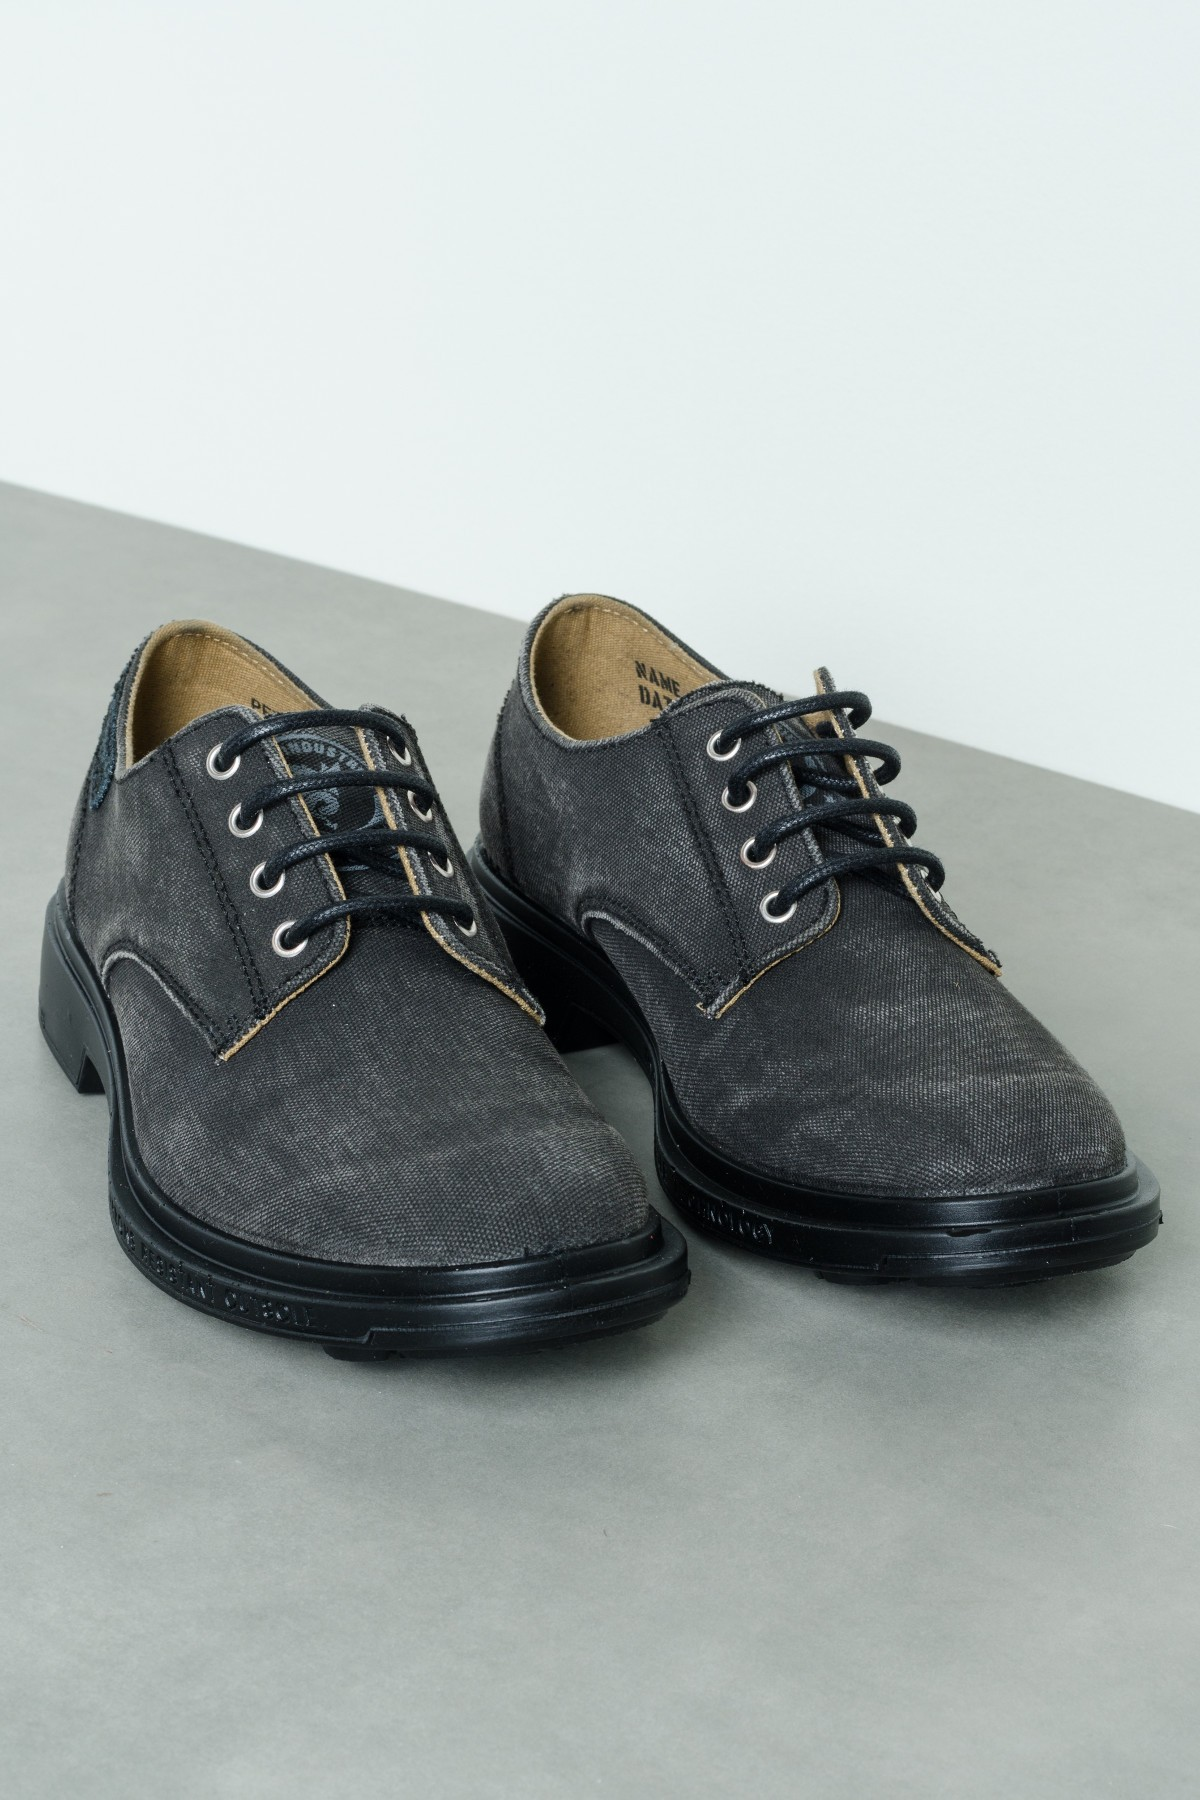 PEZZOL 1951  Shoes for man S/S17